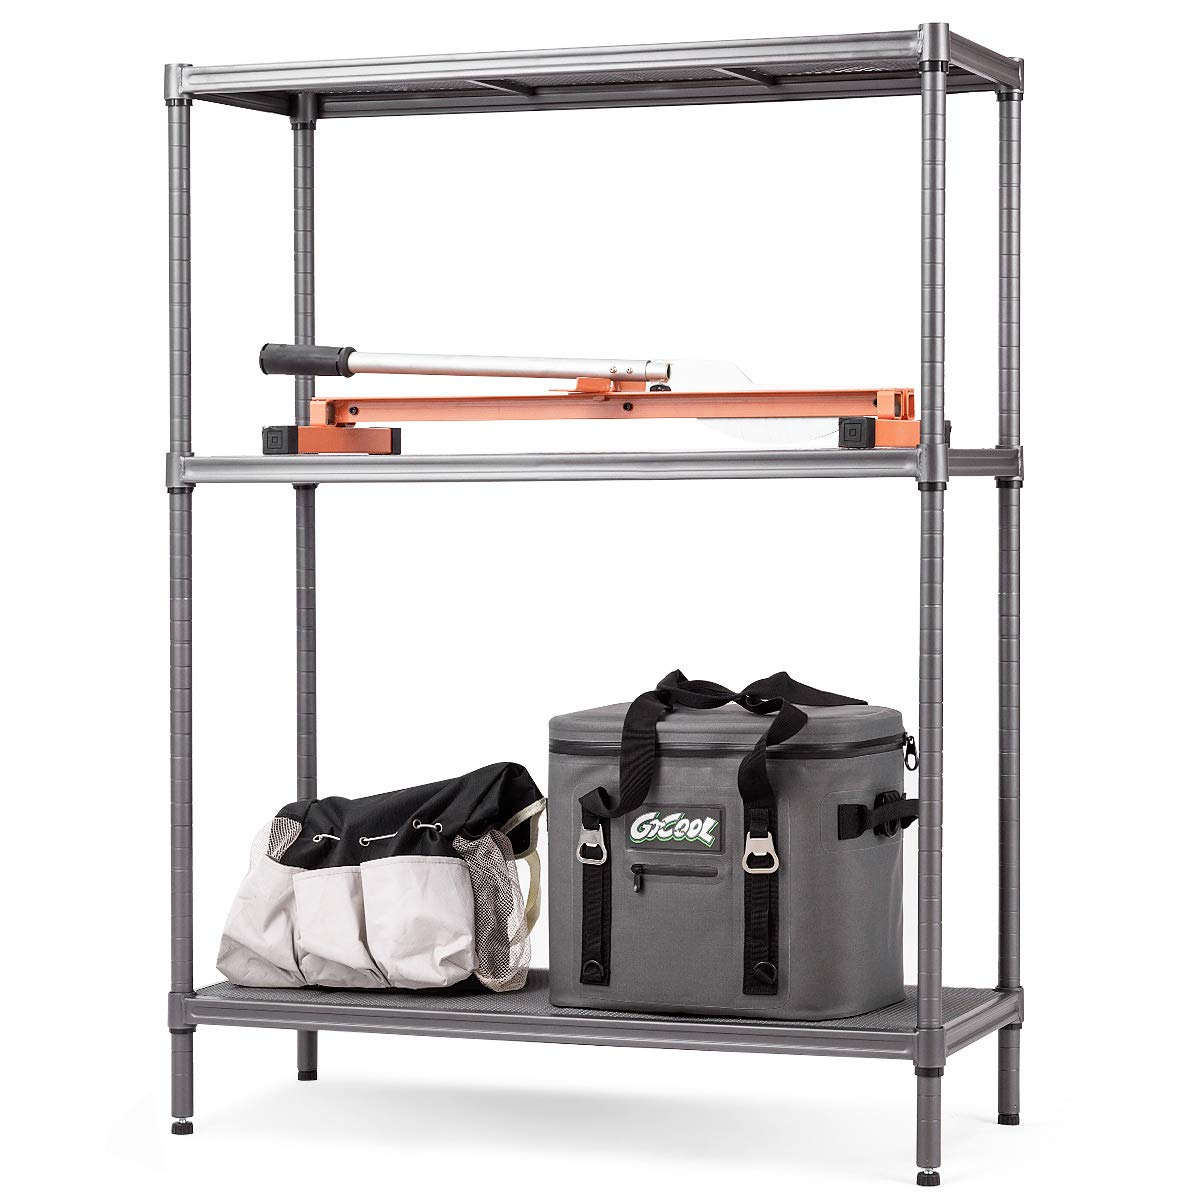 TANGKULA Storage Shelves 3-Tier Space-Saving Storage Rack Heavy Duty Metal Shelf Organizer High Weight Capacity Multi-Use Shelving Unit for Home Office Dormitory Garage (47.5'' H) by Tangkula